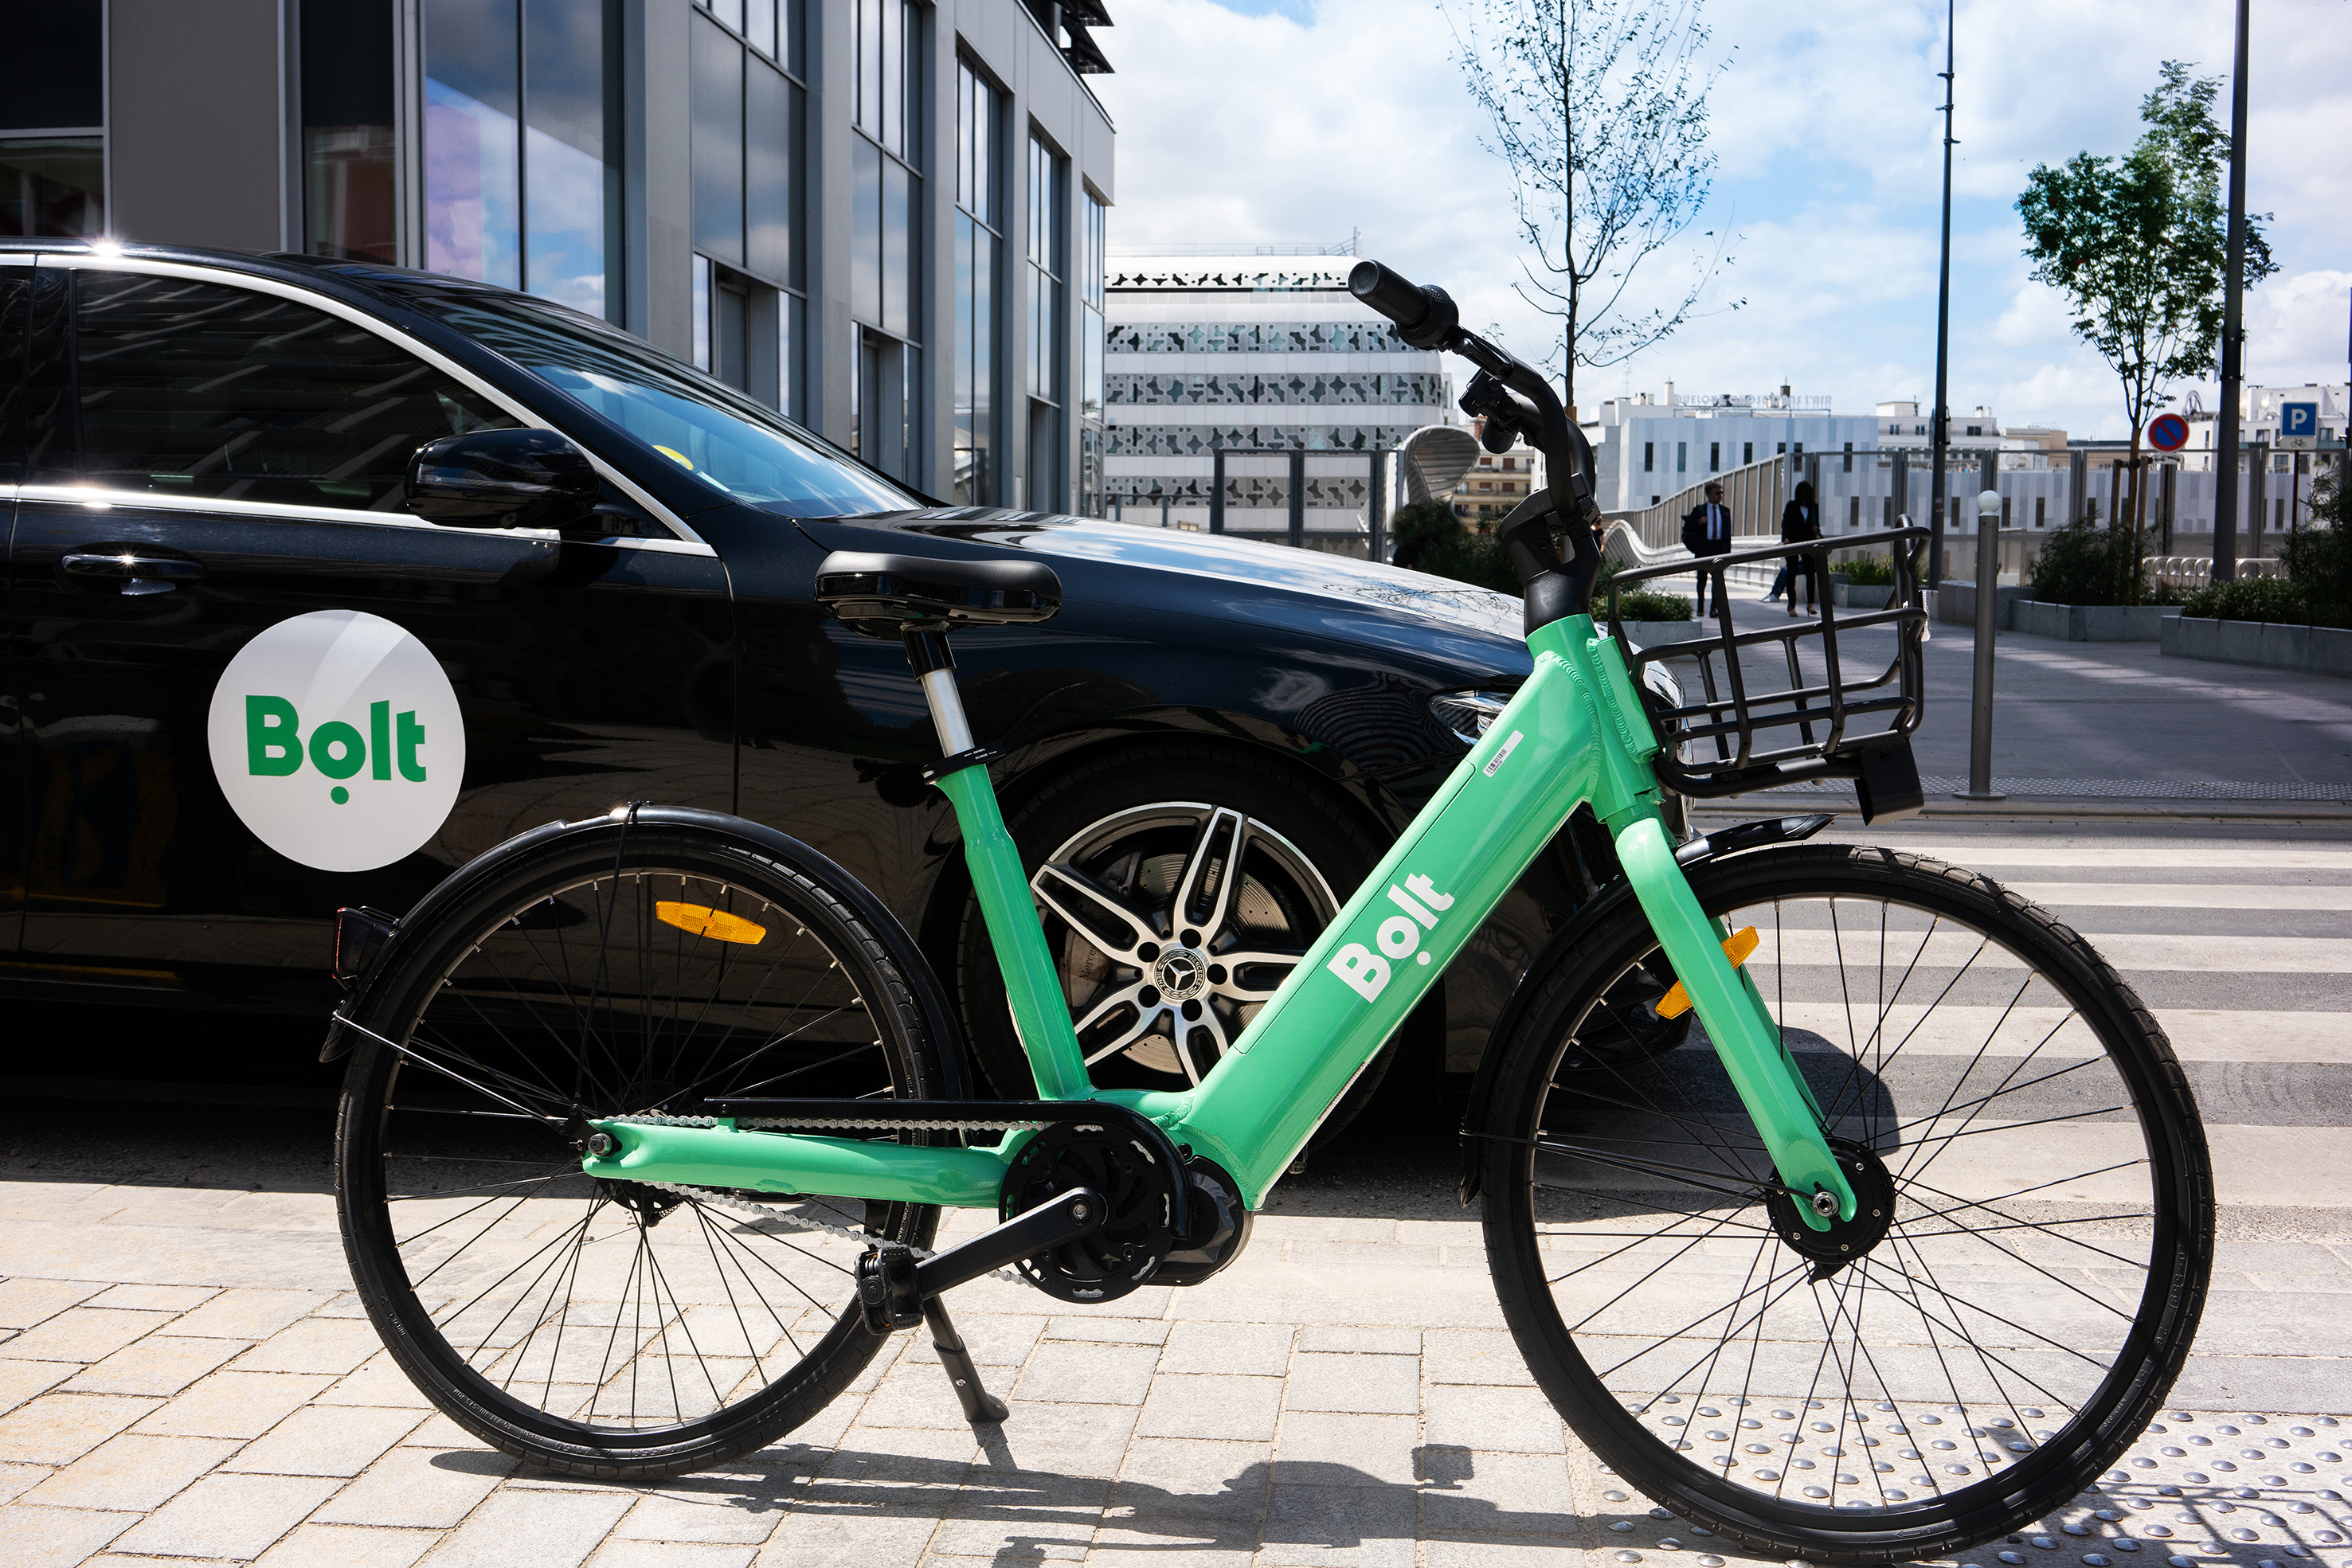 Bolt launches electric bike-sharing service in Paris